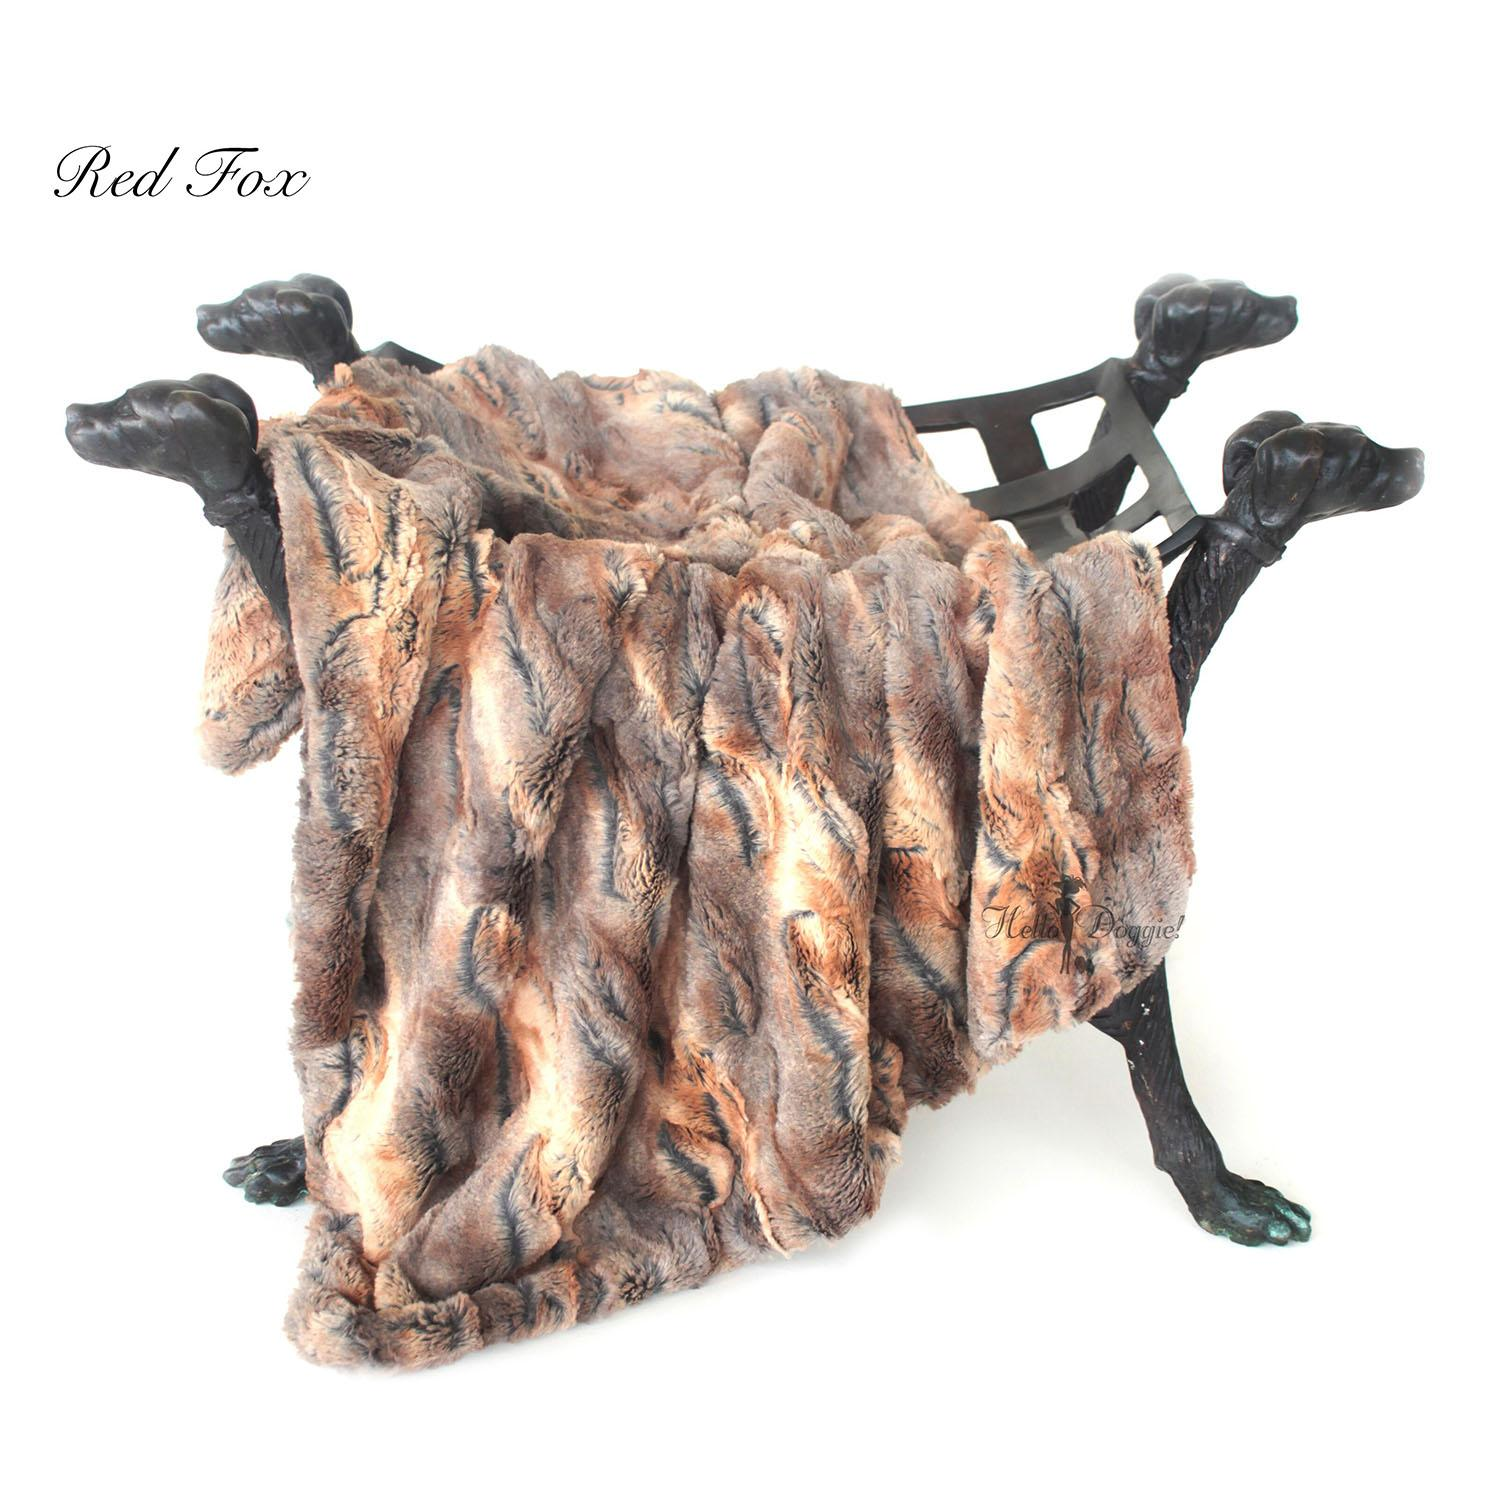 Luxe Dog Blanket by Hello Doggie - Red Fox